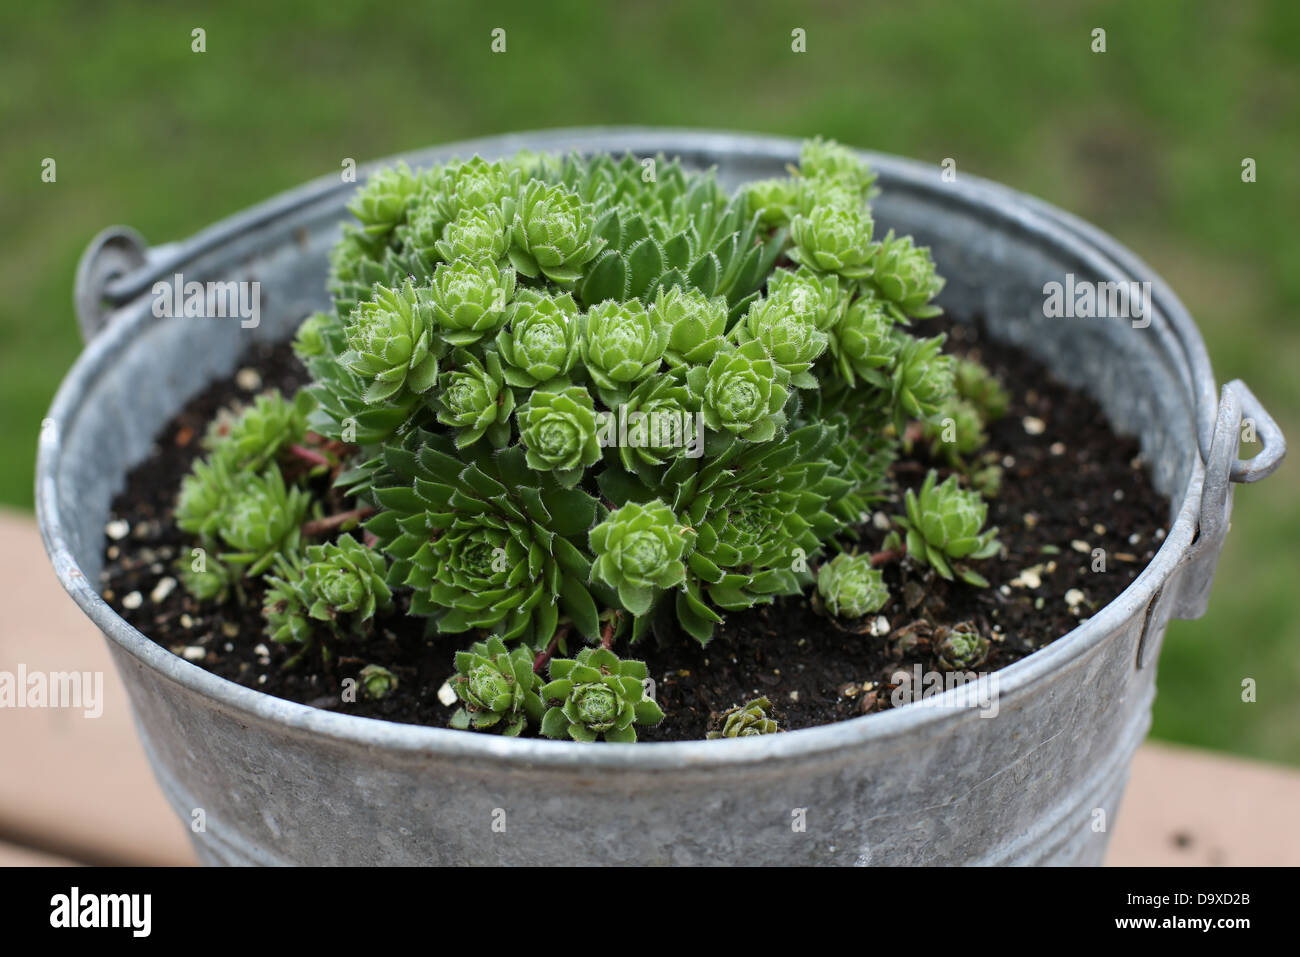 A bucket filled with hens and chicks plant. - Stock Image